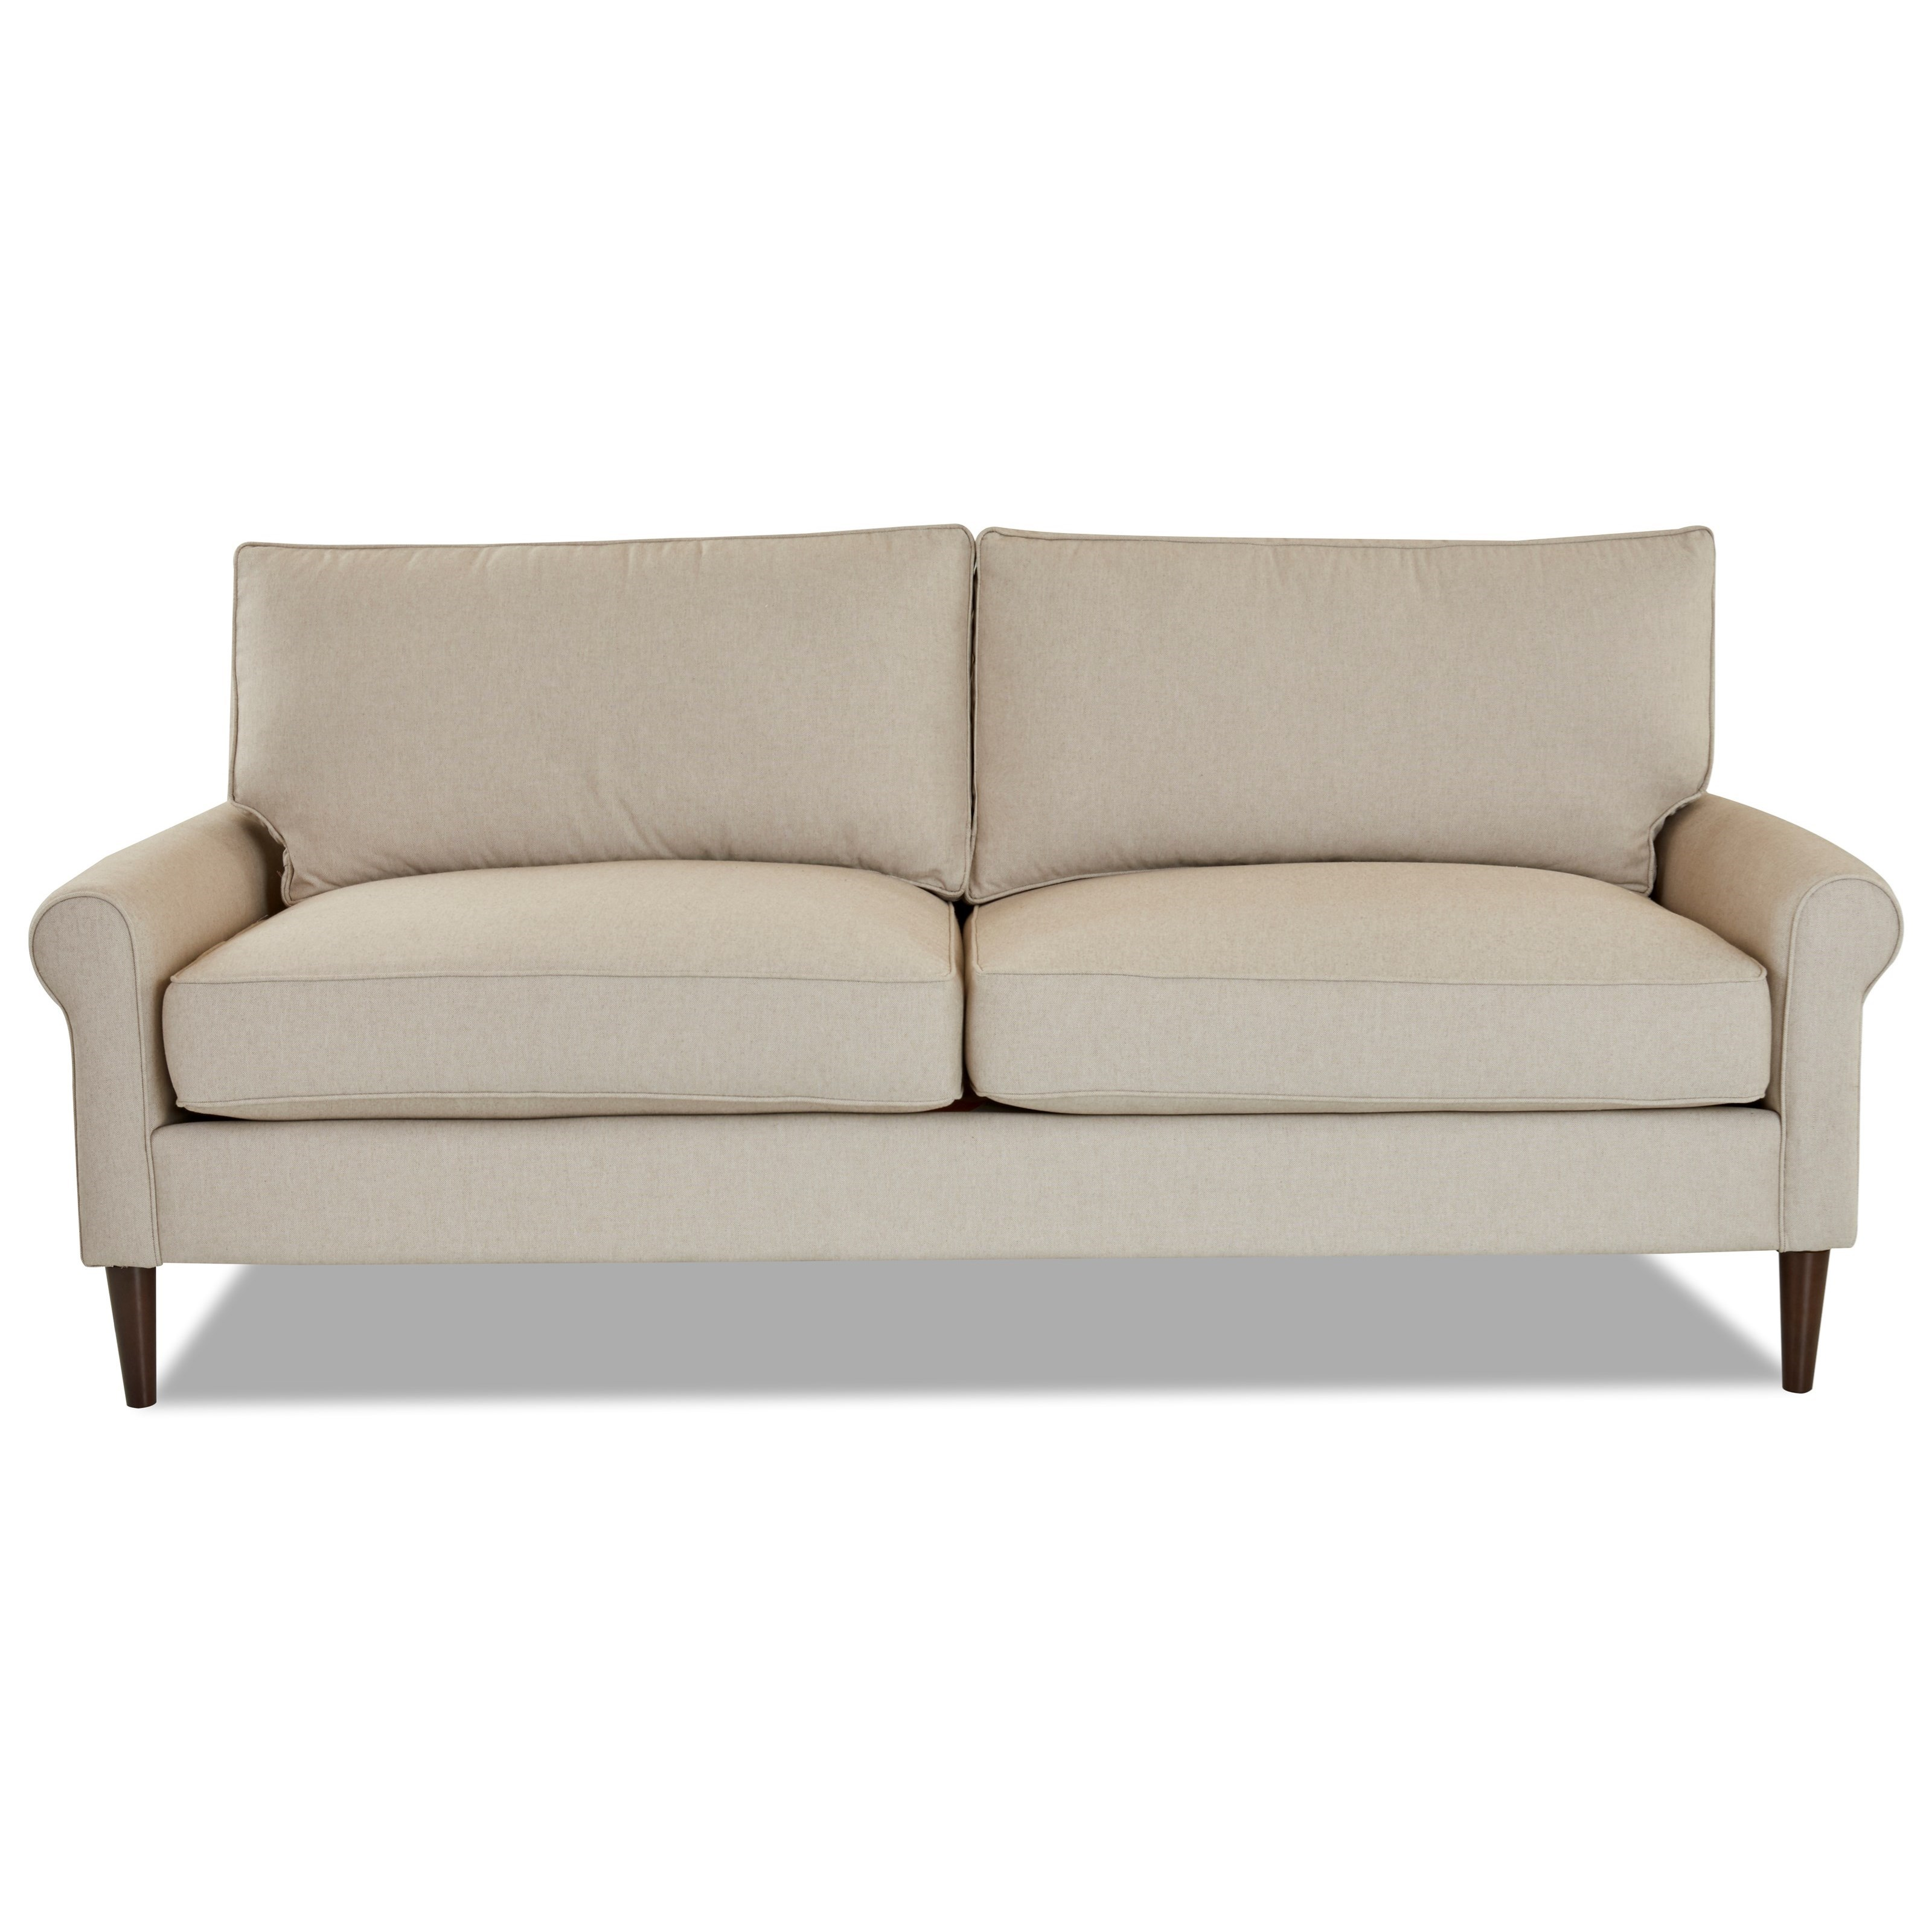 Chelsea 2 over 2 Sofa with Round Tapered Legs by Klaussner at Northeast Factory Direct